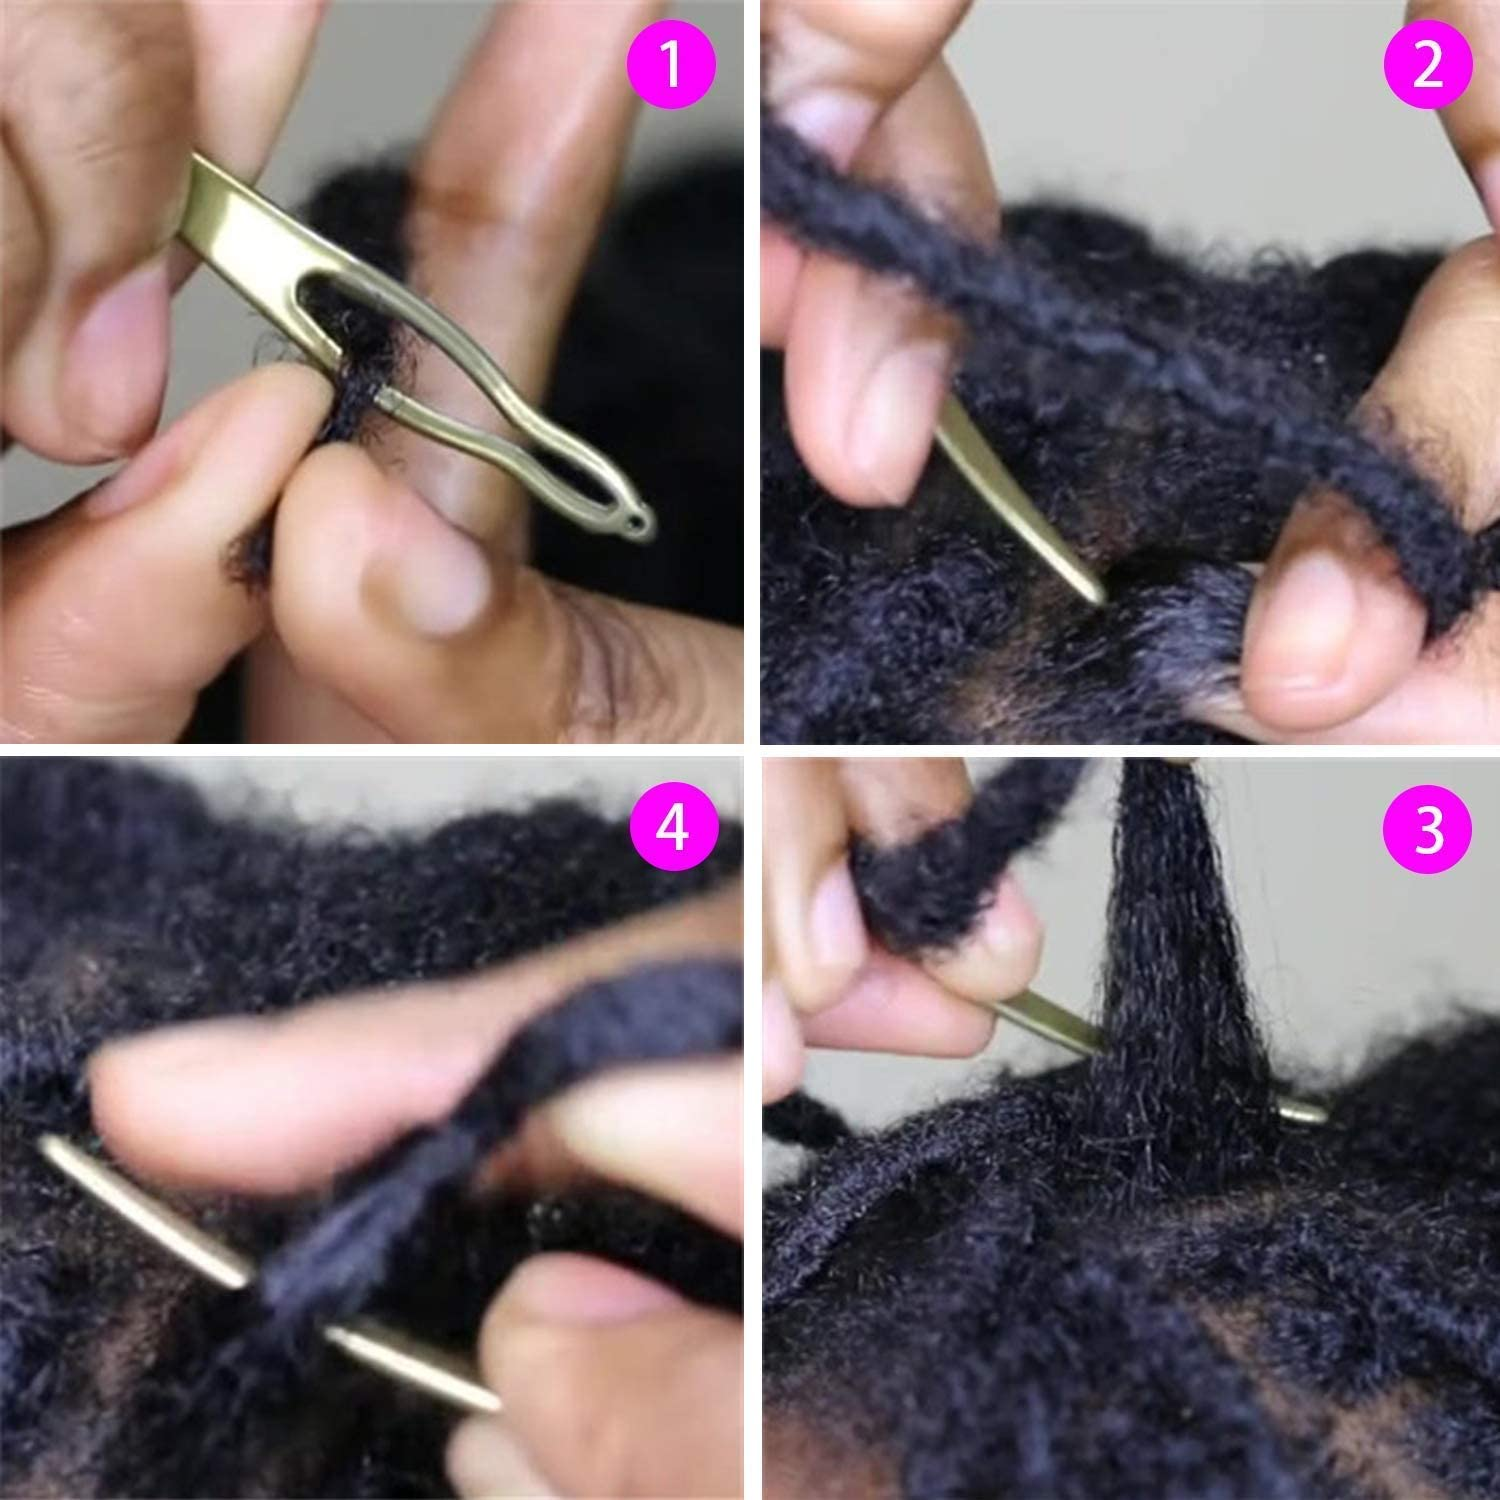 Easyloc Hair Tool for Dreadlocks 2 Pieces Beautywin Dreadlock Tool Interlocking Tool for Locs Tightening Accessory for Small Starting and Maintaining Your Locs Gold and Silver Interlocks or Sisterlocks